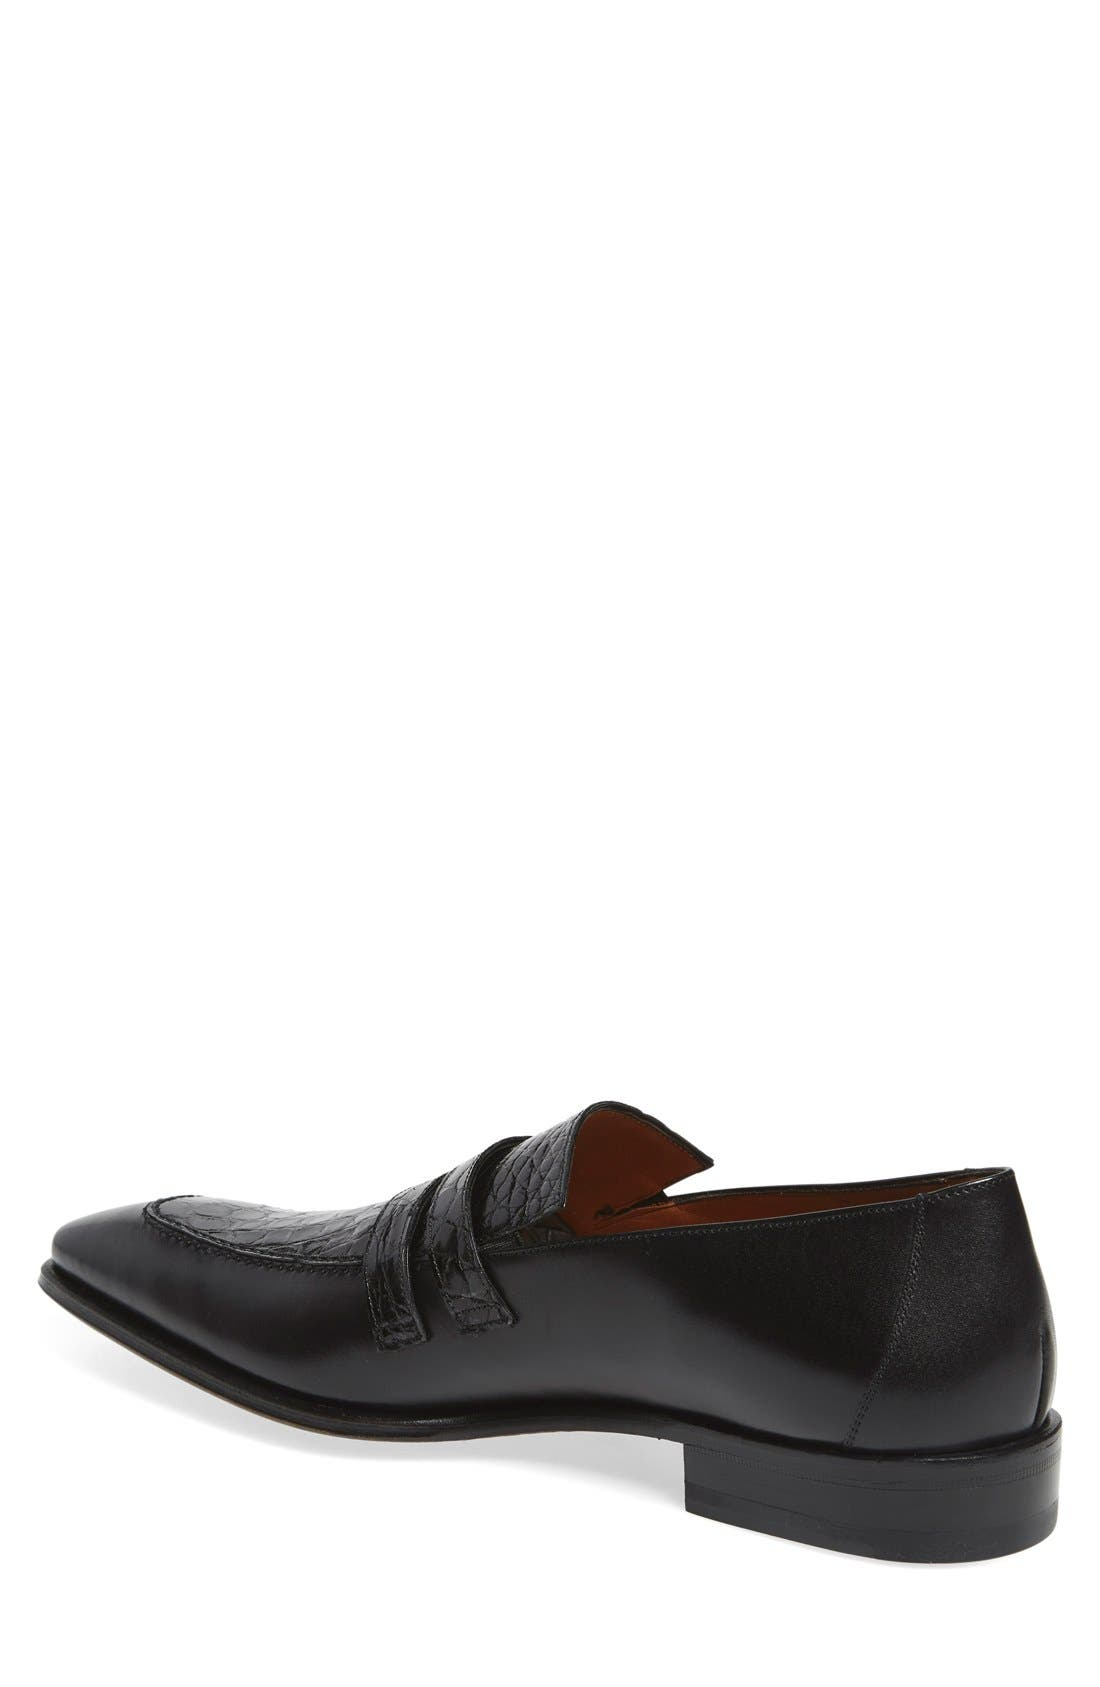 Alternate Image 2  - Mezlan 'Berenger' Loafer (Men)